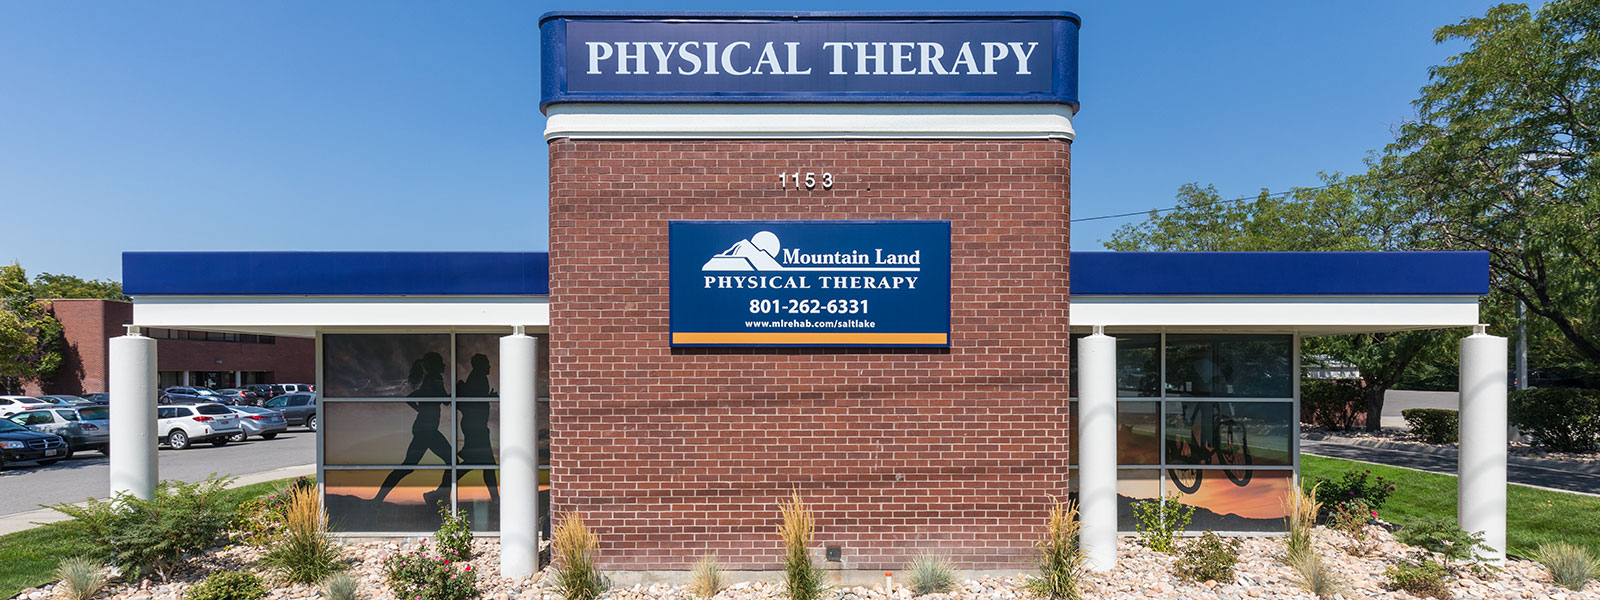 Millcreek Physical Therapy